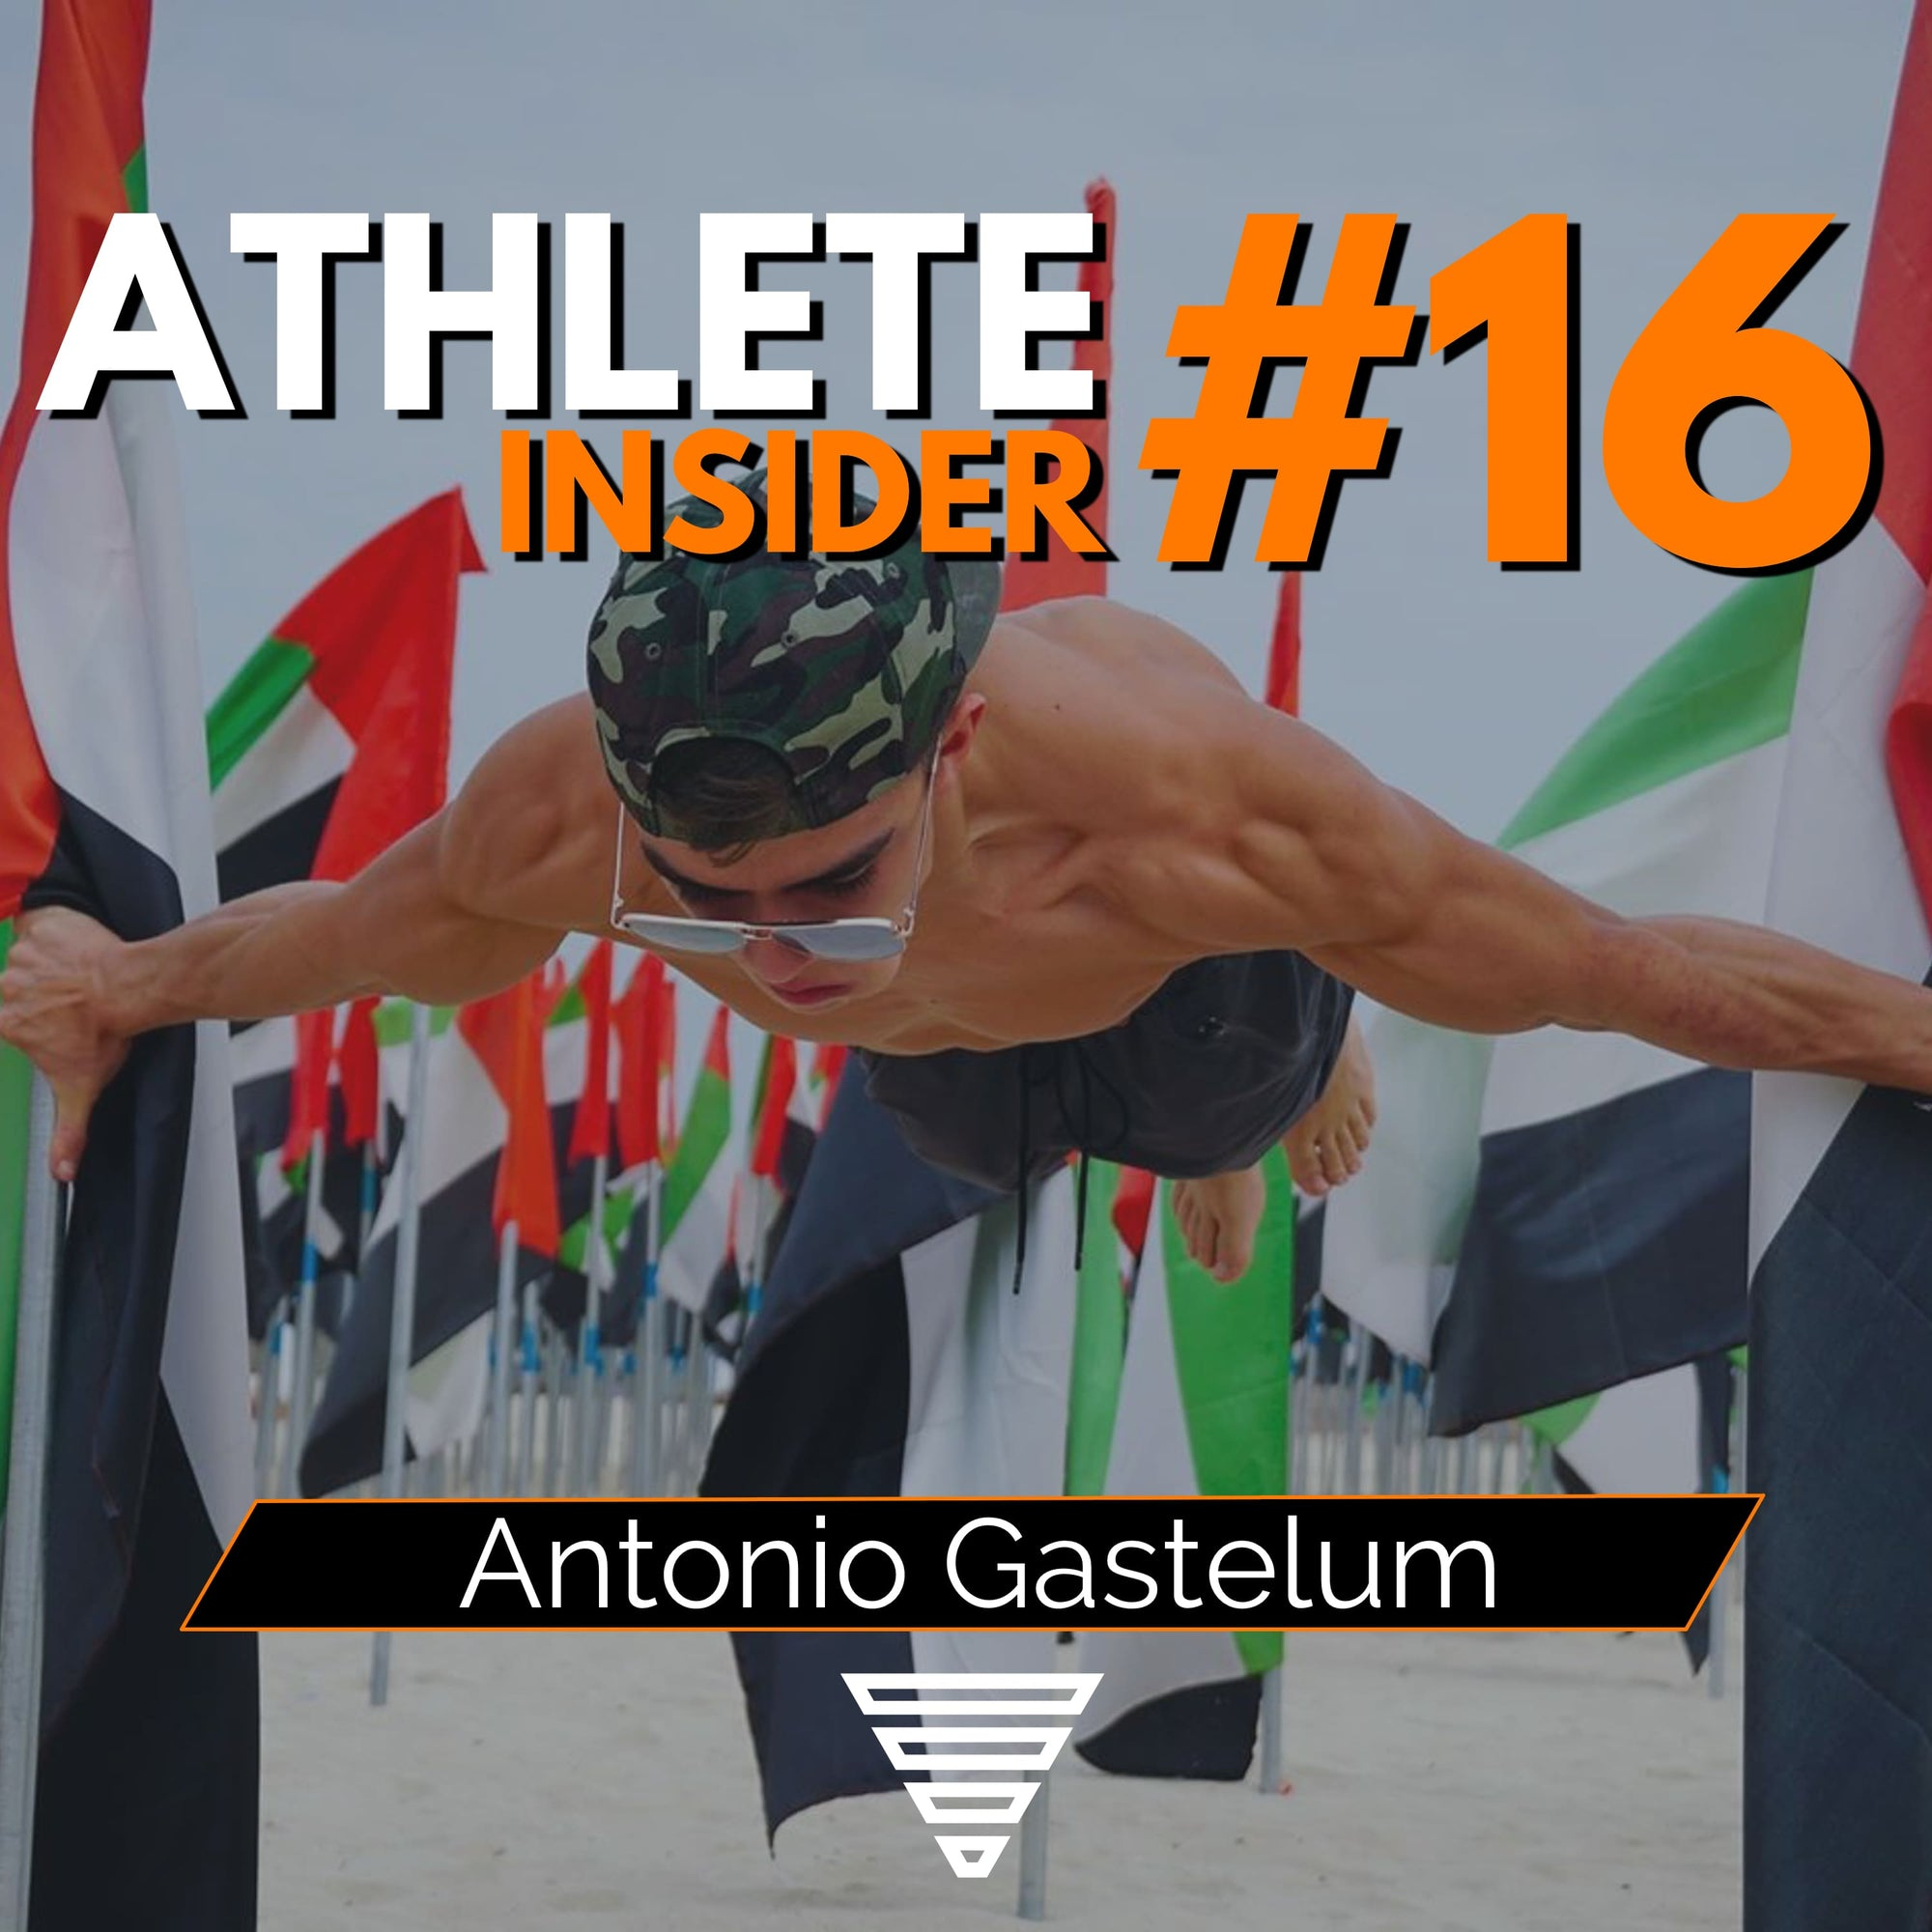 ANTONIO GASTELUM | Your nutrition makes you fail | The Athlete Insider Podcast #16